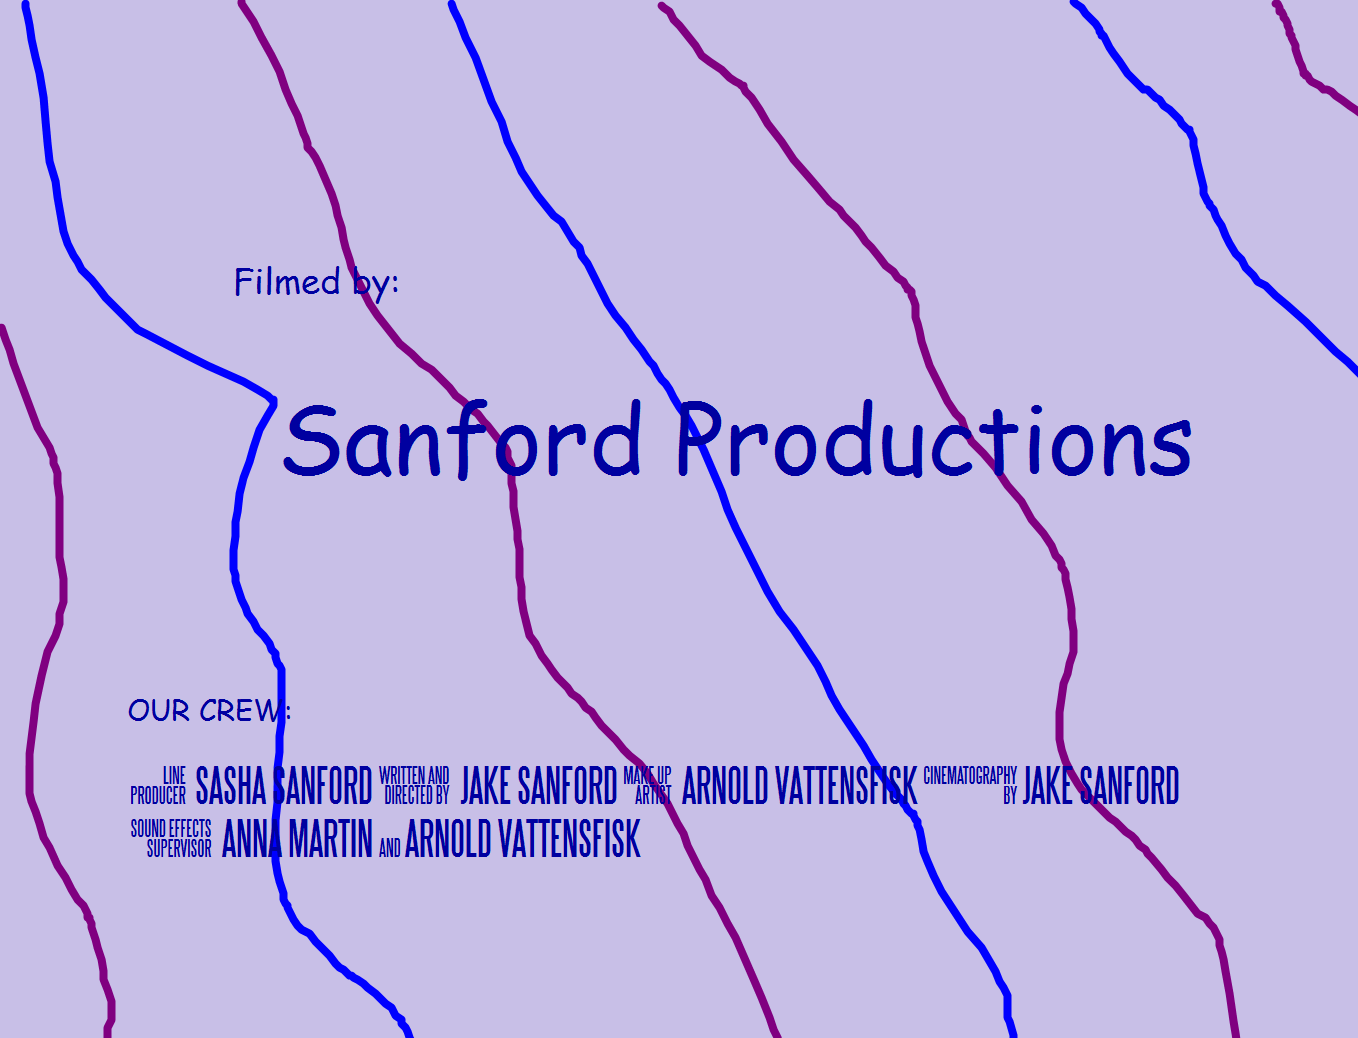 Sanford Productions